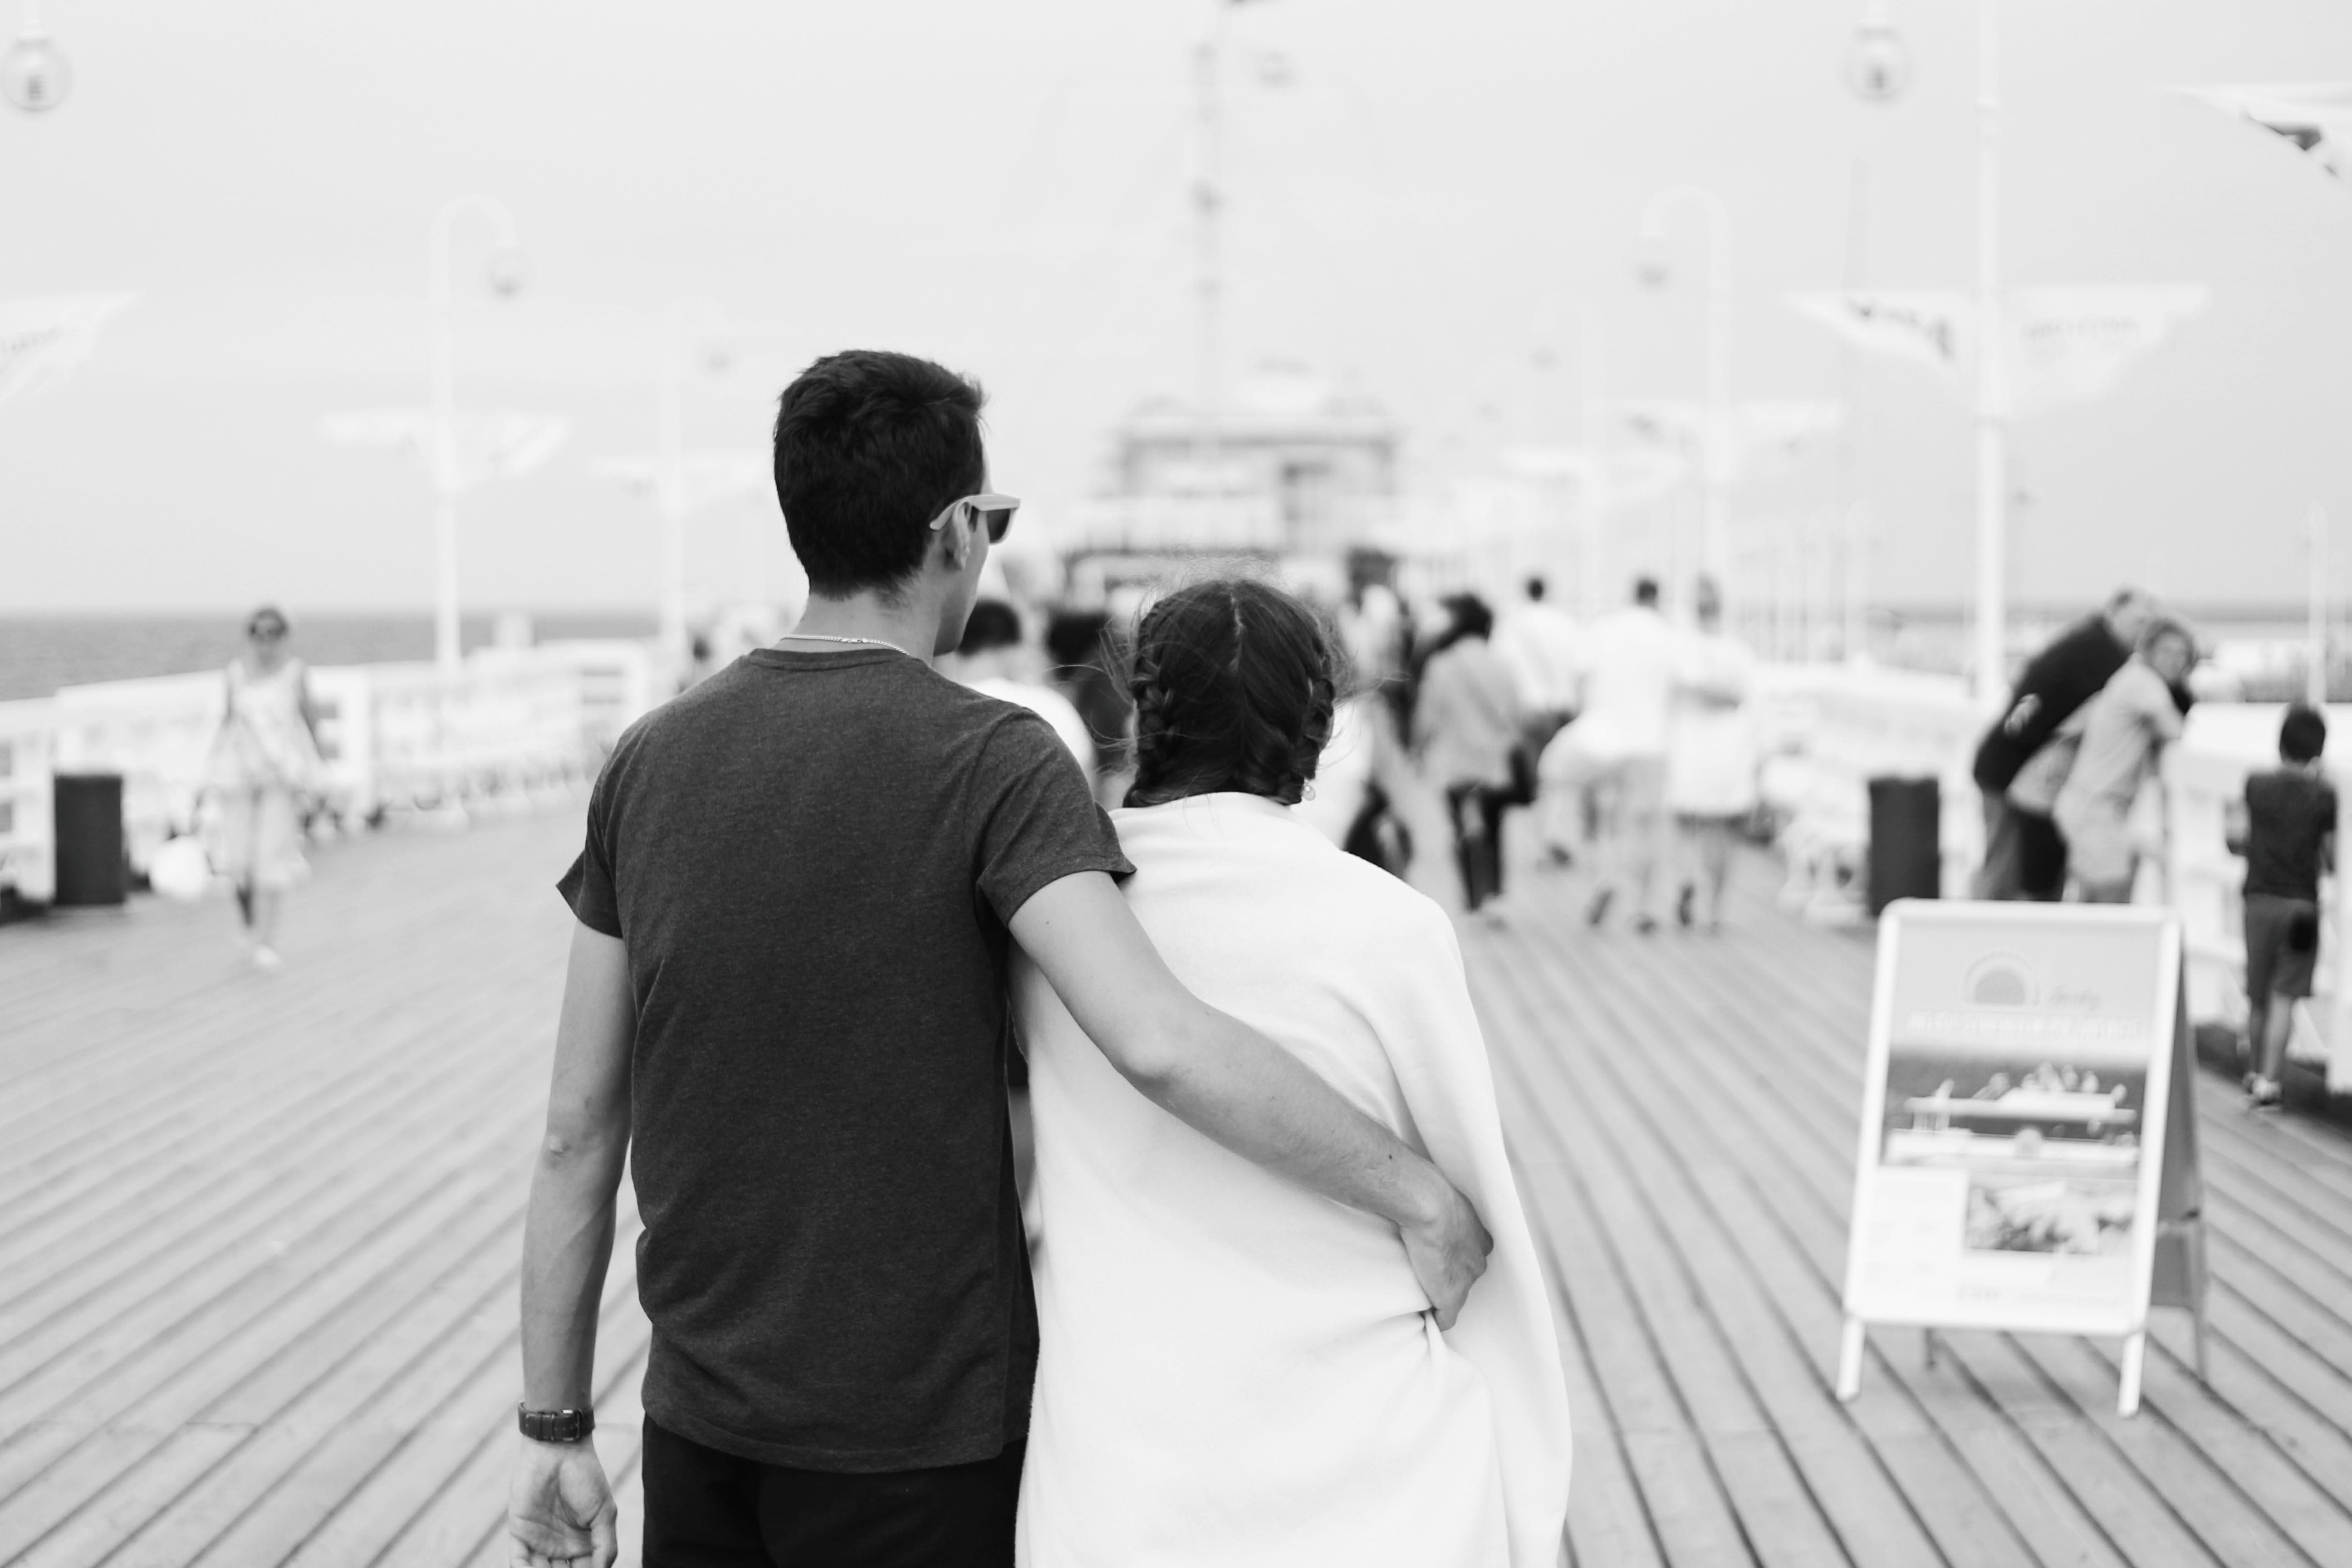 Monochrome Photography of Couple on Boardwalk